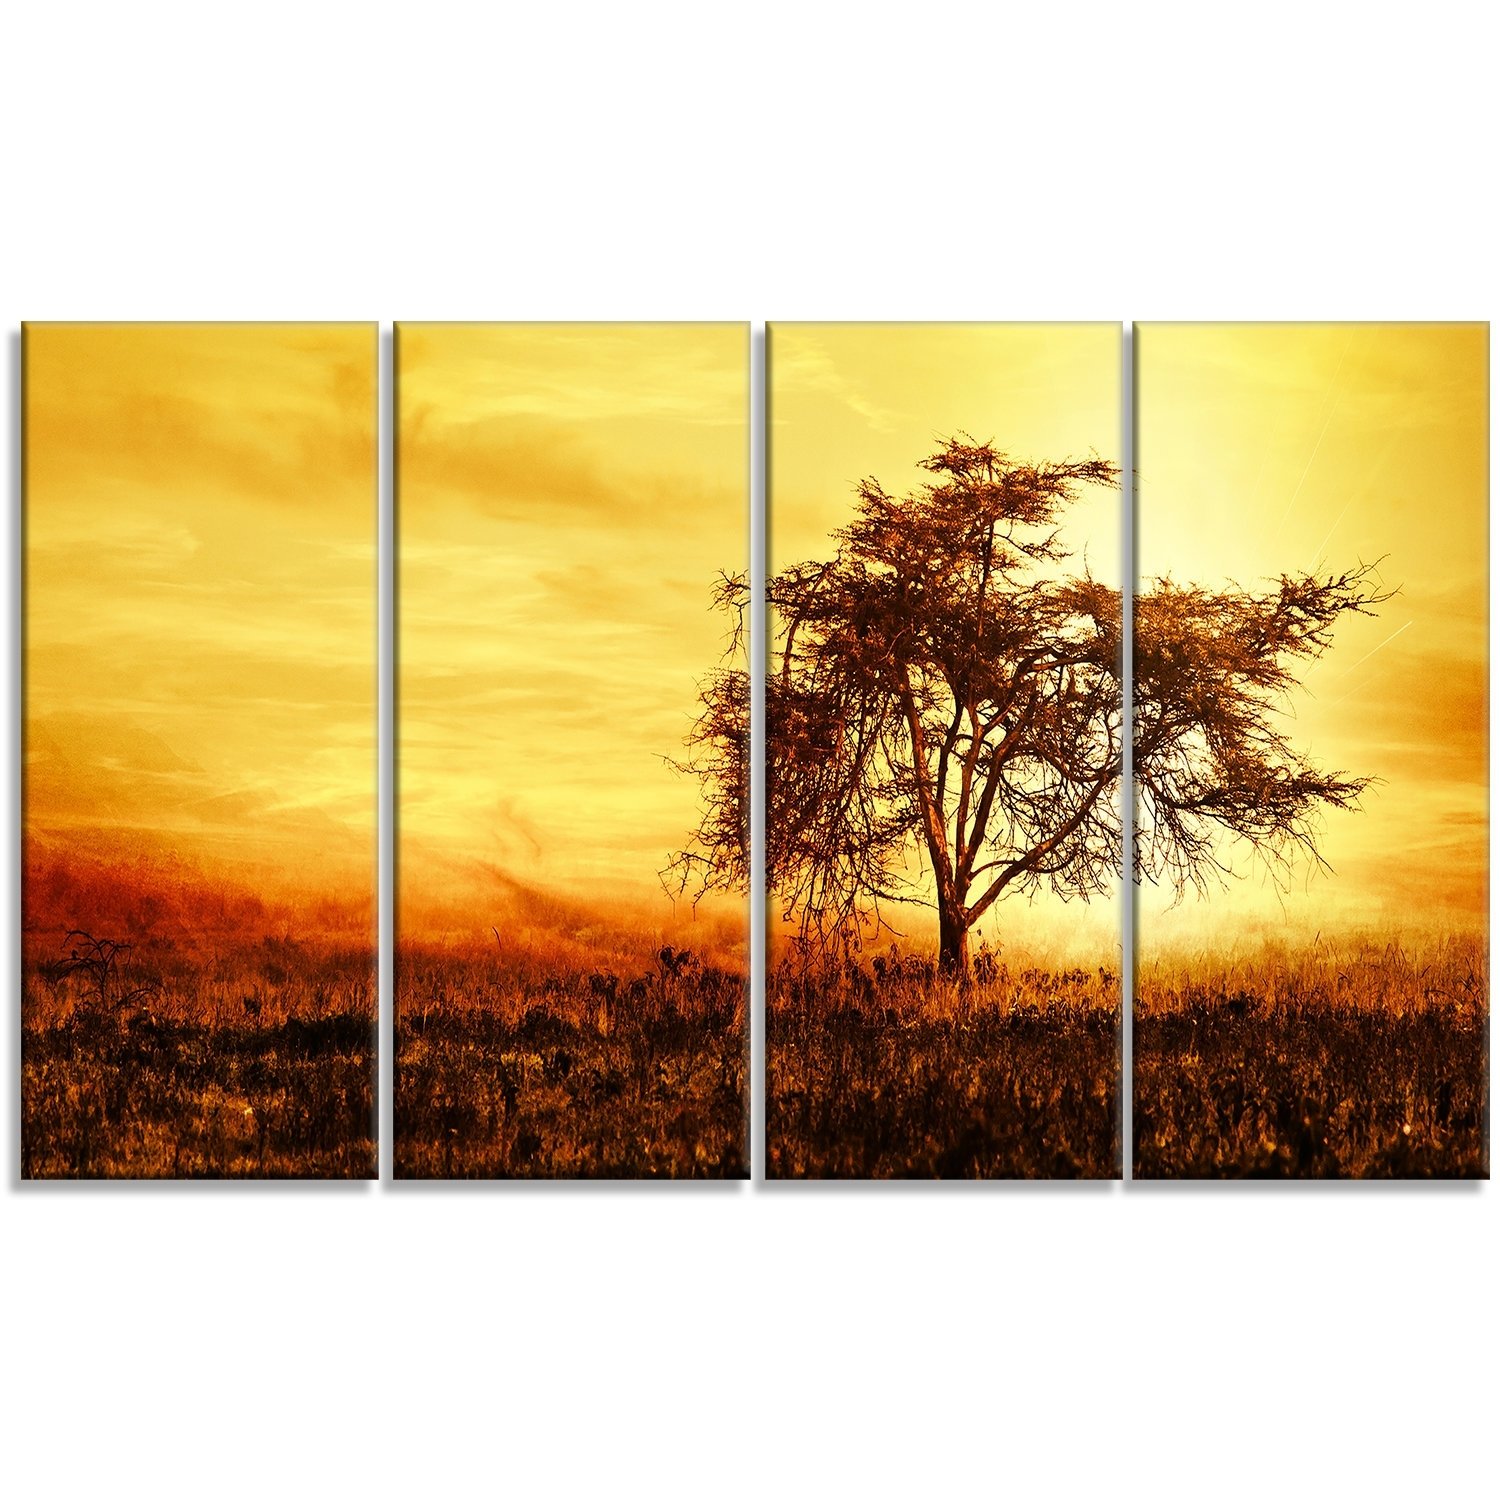 Designart 'african Tree Silhouette' 4 Piece Wall Art On Wrapped For 4 Piece Wall Art (View 14 of 20)